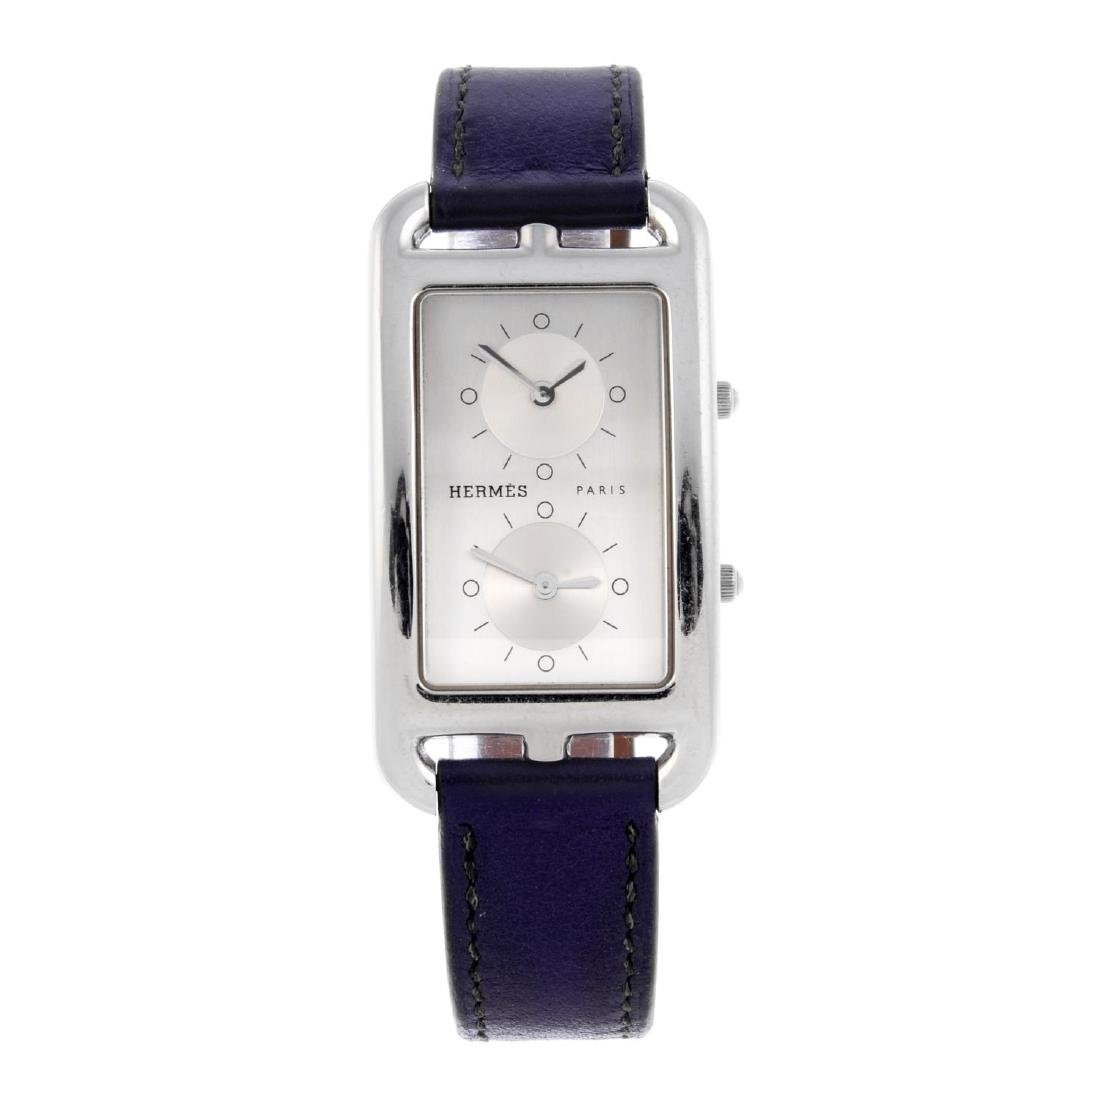 HERMÈS - a Cape Cod Dual Time wrist watch. Stainless